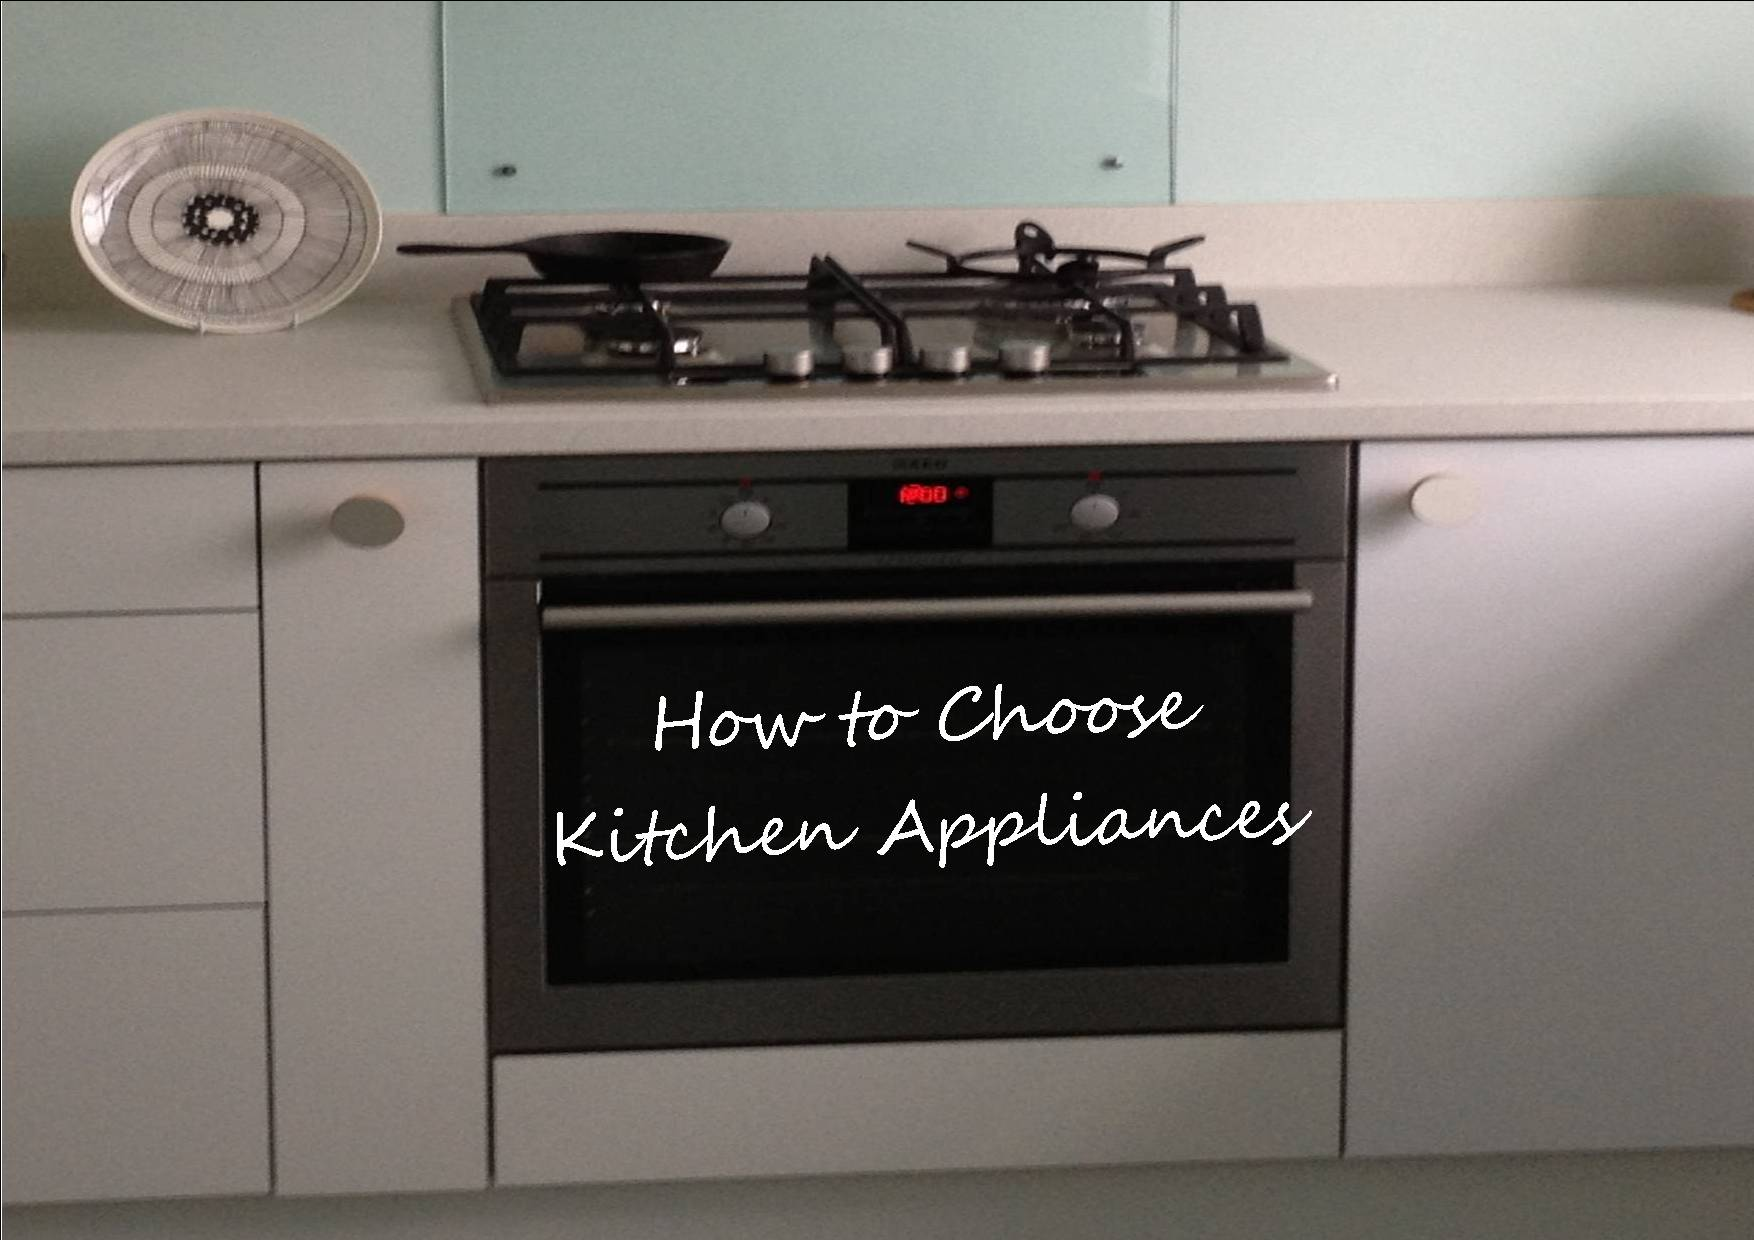 How-to-choose-kitchen-appliances